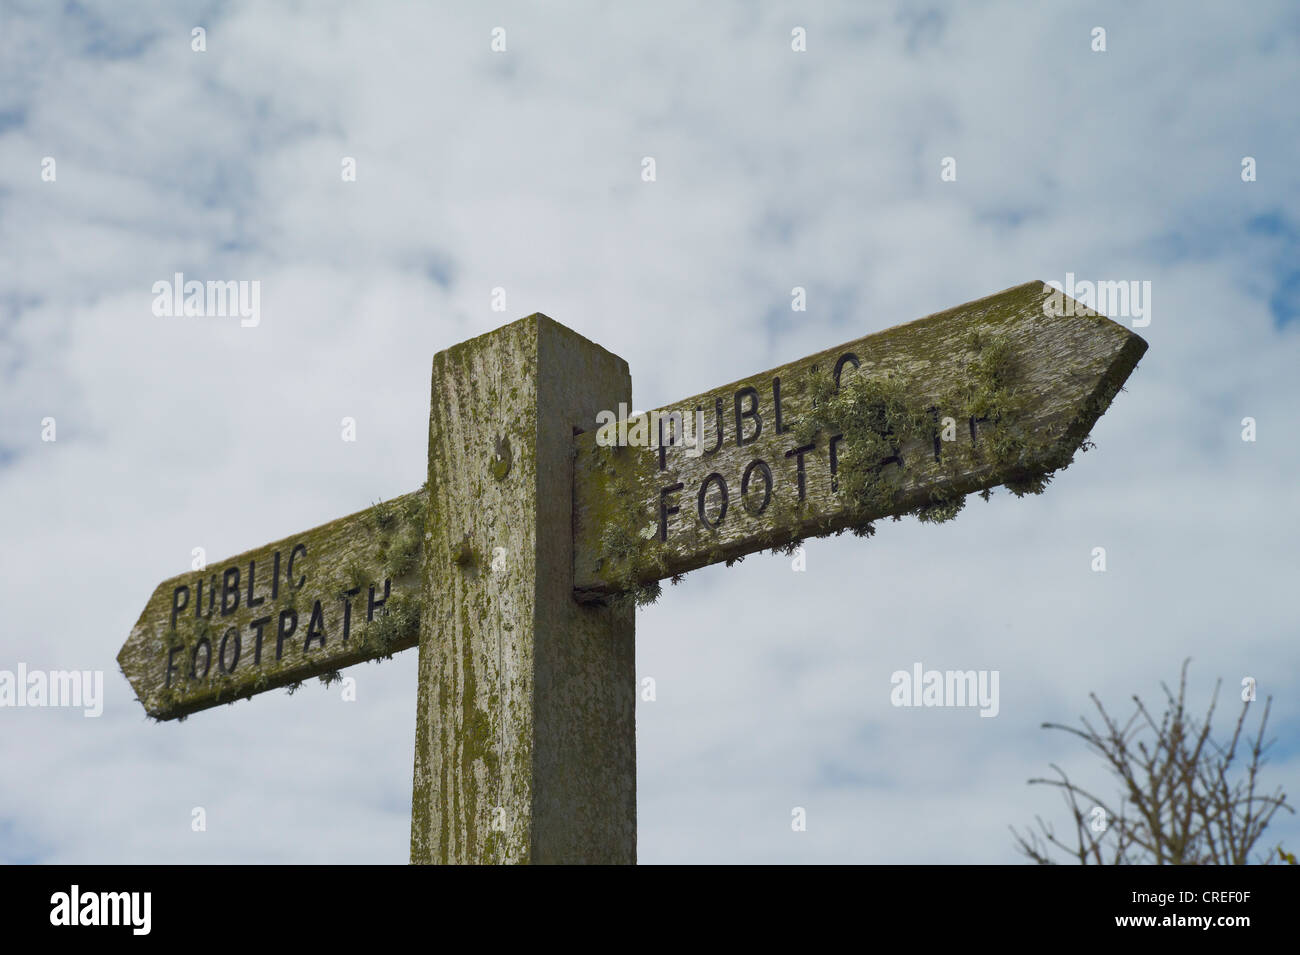 A public footpath signpost covered in lichen against a blue and cloudy sky south west coast path devon england - Stock Image